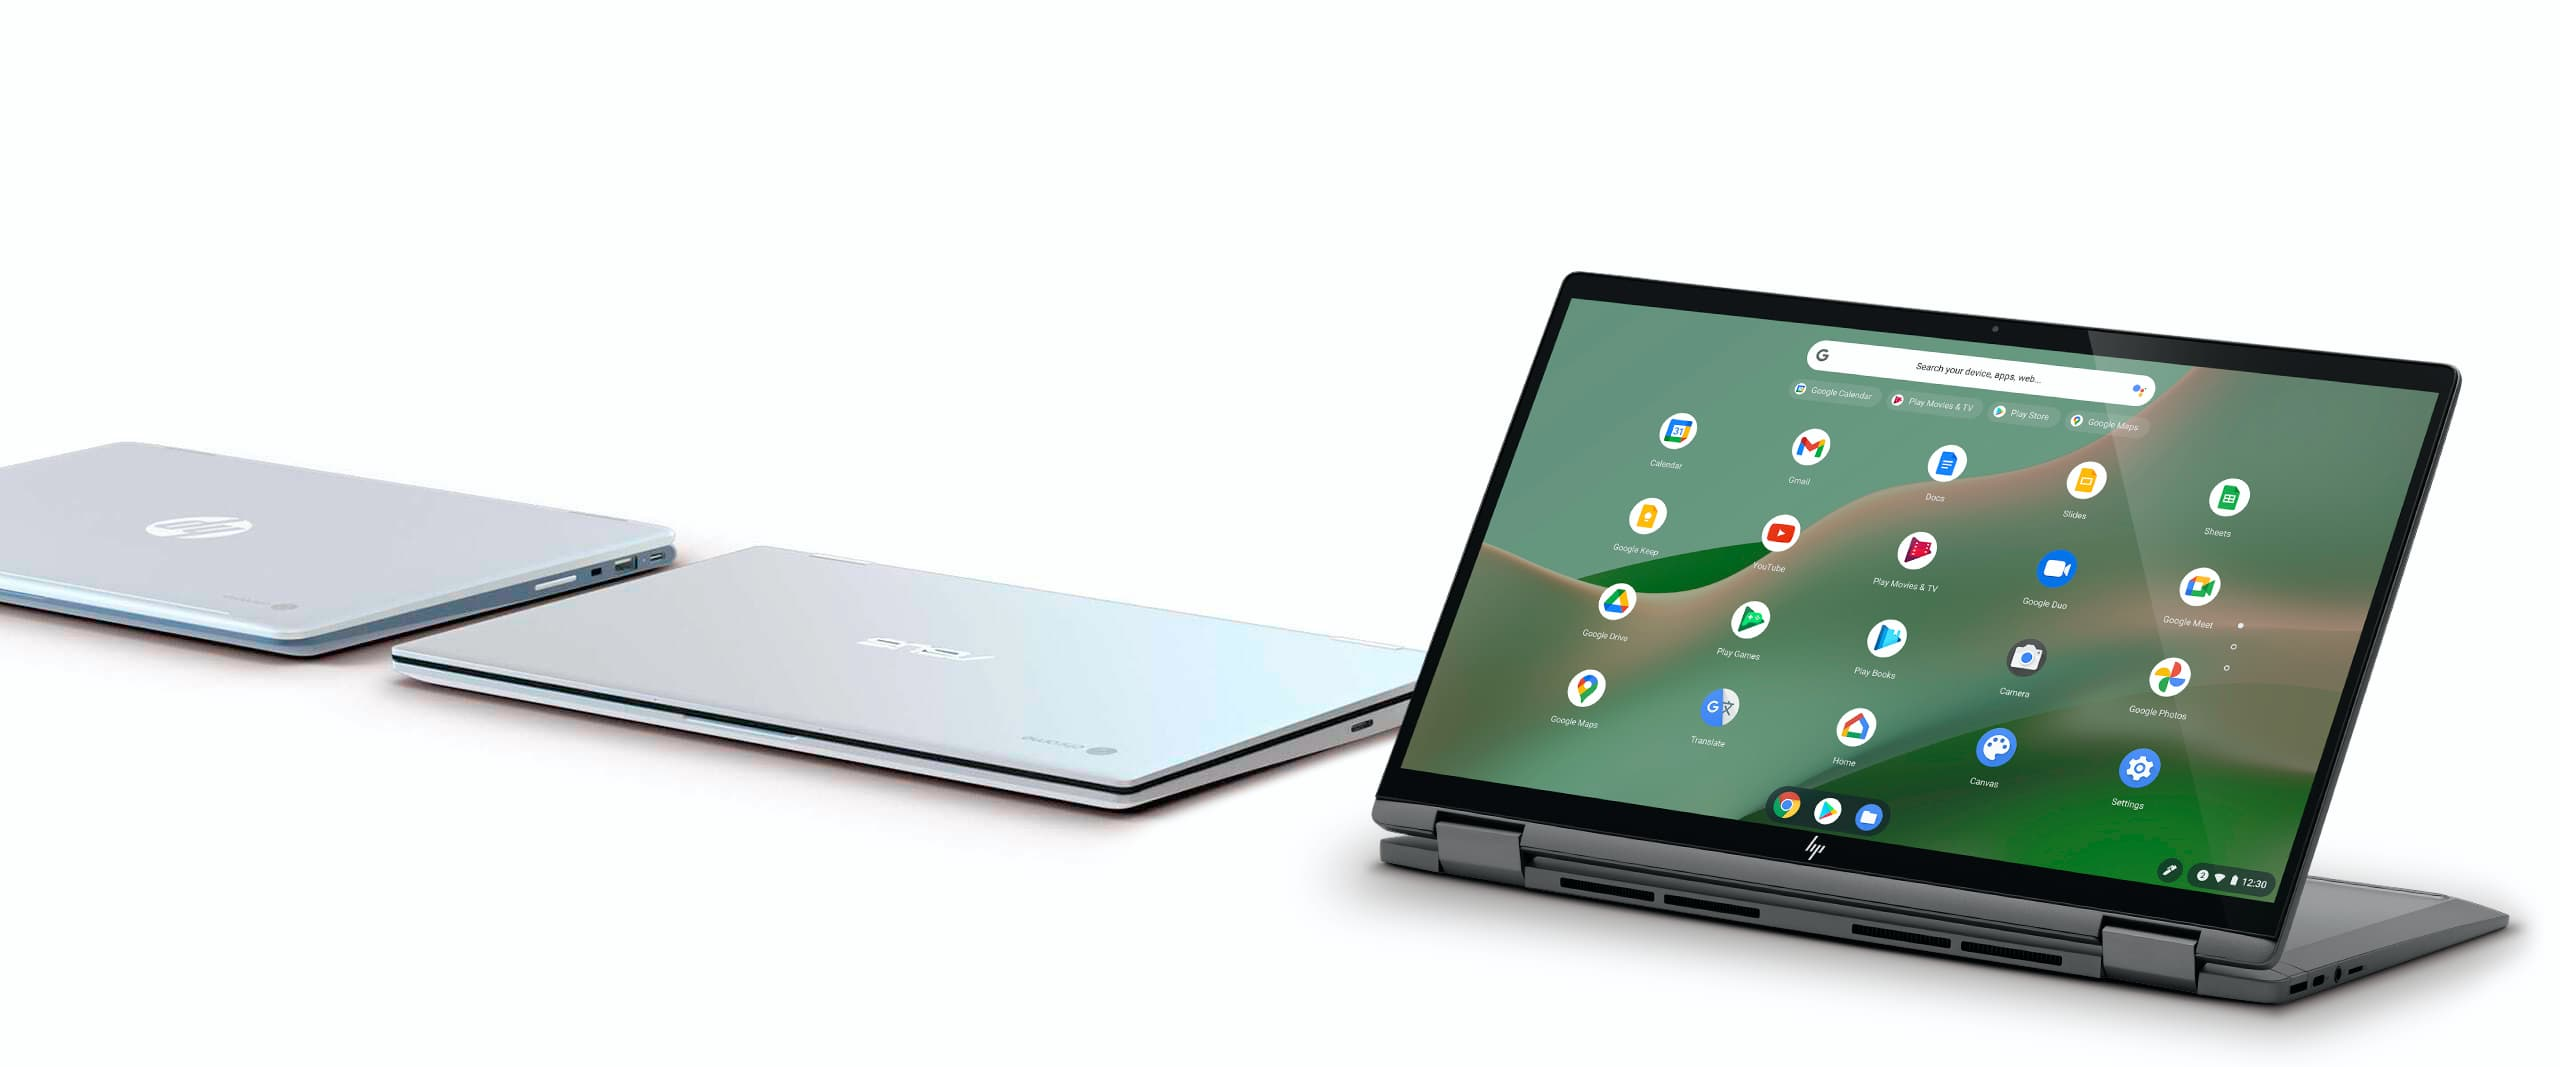 Google Chromebooks - Laptops, Detachables and Tablets